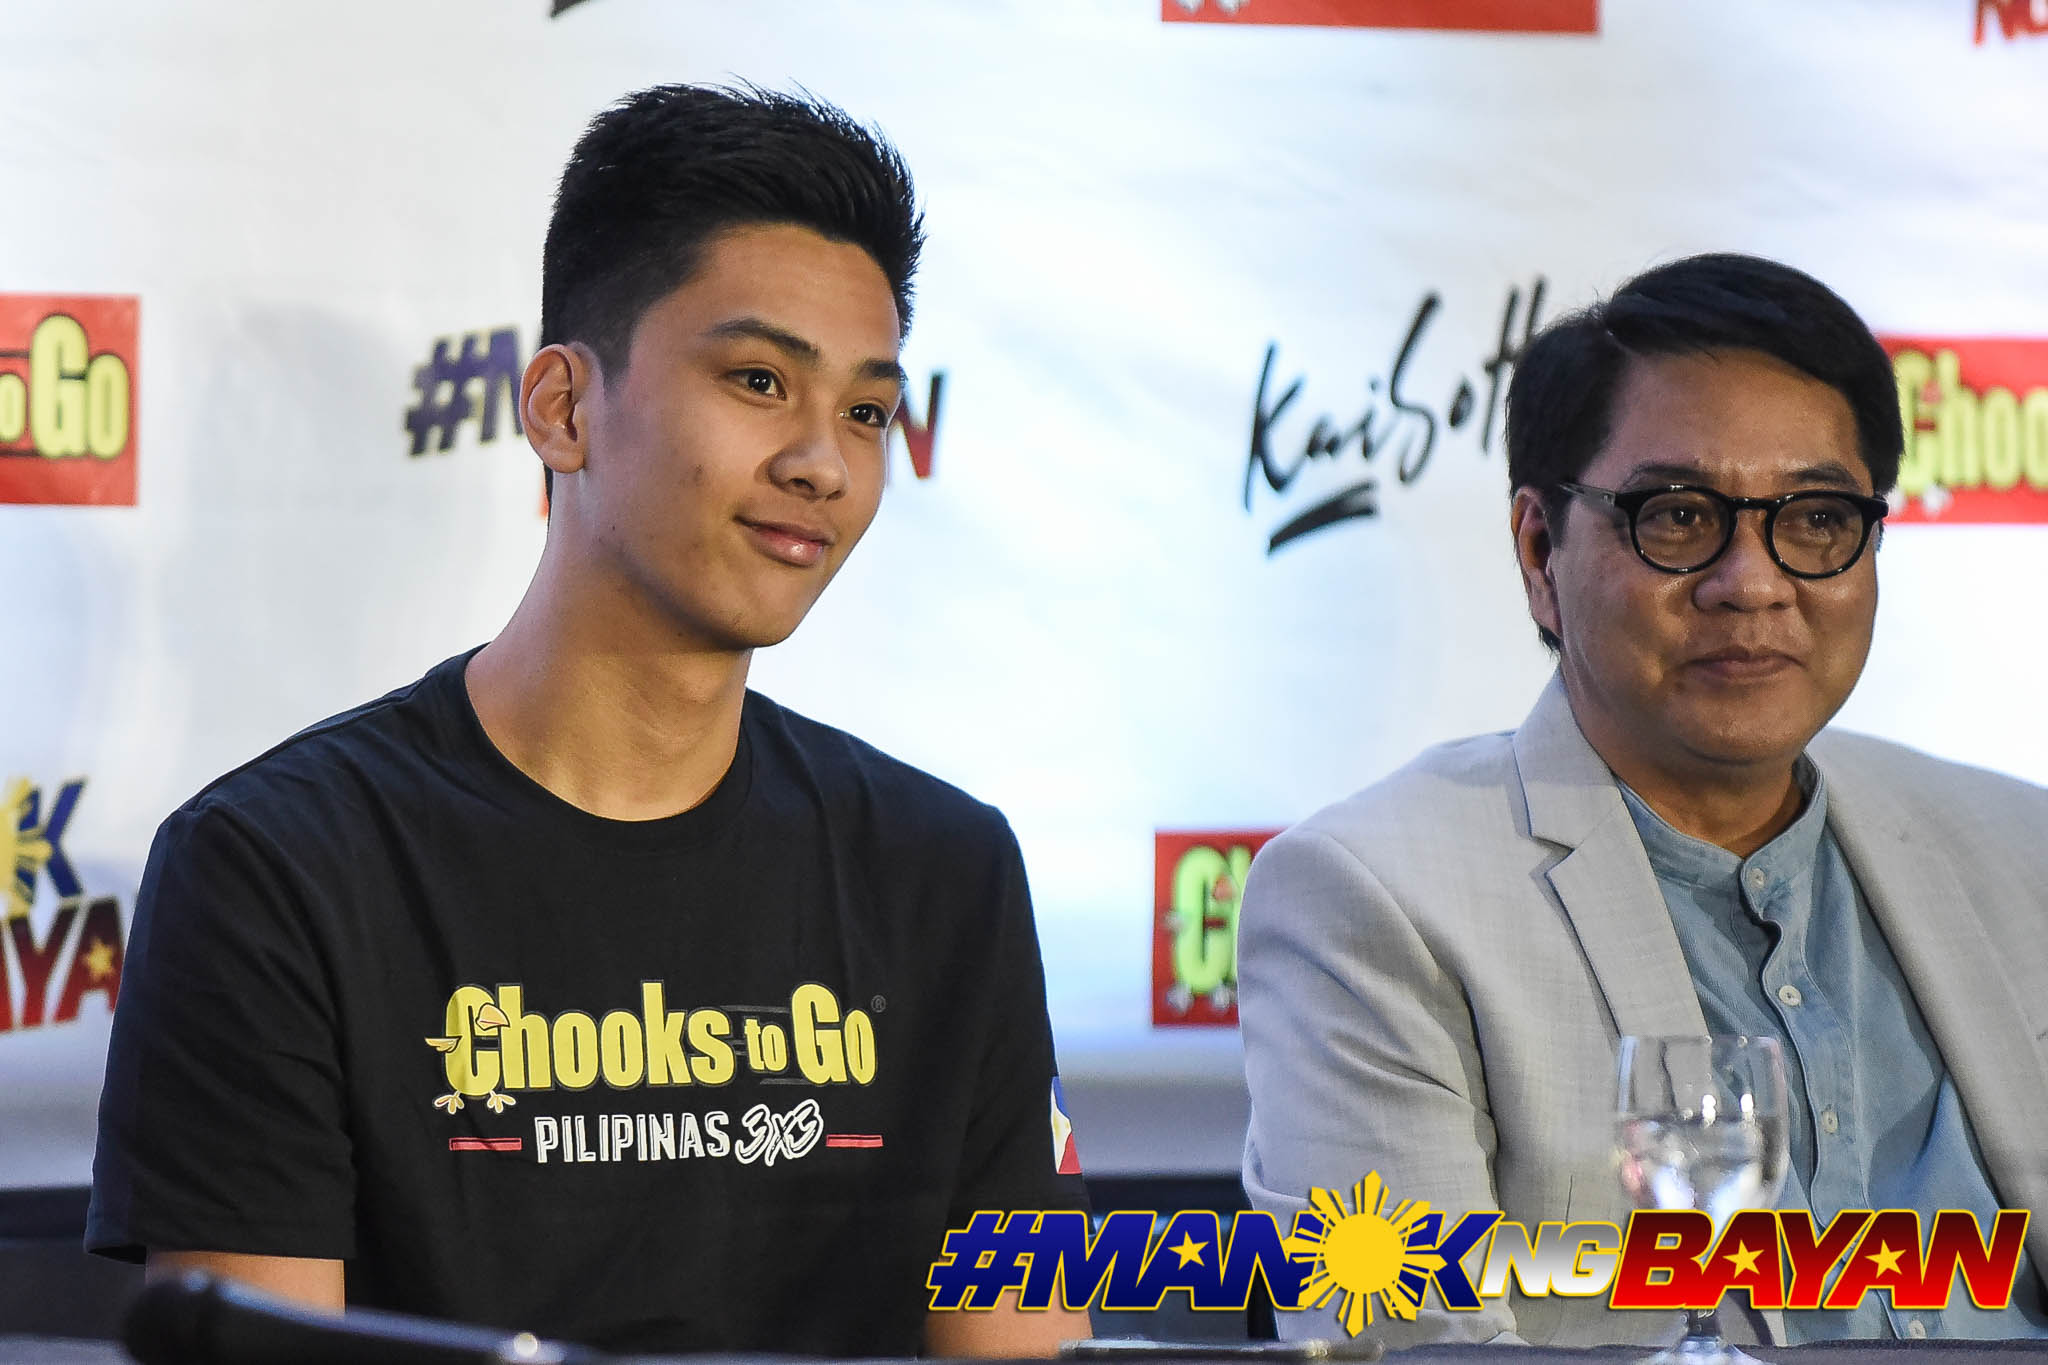 Tiebreaker Times Chooks-to-Go, SBP bring Kai Sotto home for U19 World Cup Basketball Gilas Pilipinas News  Ronald Mascarinas Kai Sotto Gilas Pilipinas Youth Chooks-to-Go 2019 FIBA Under-19 World Cup